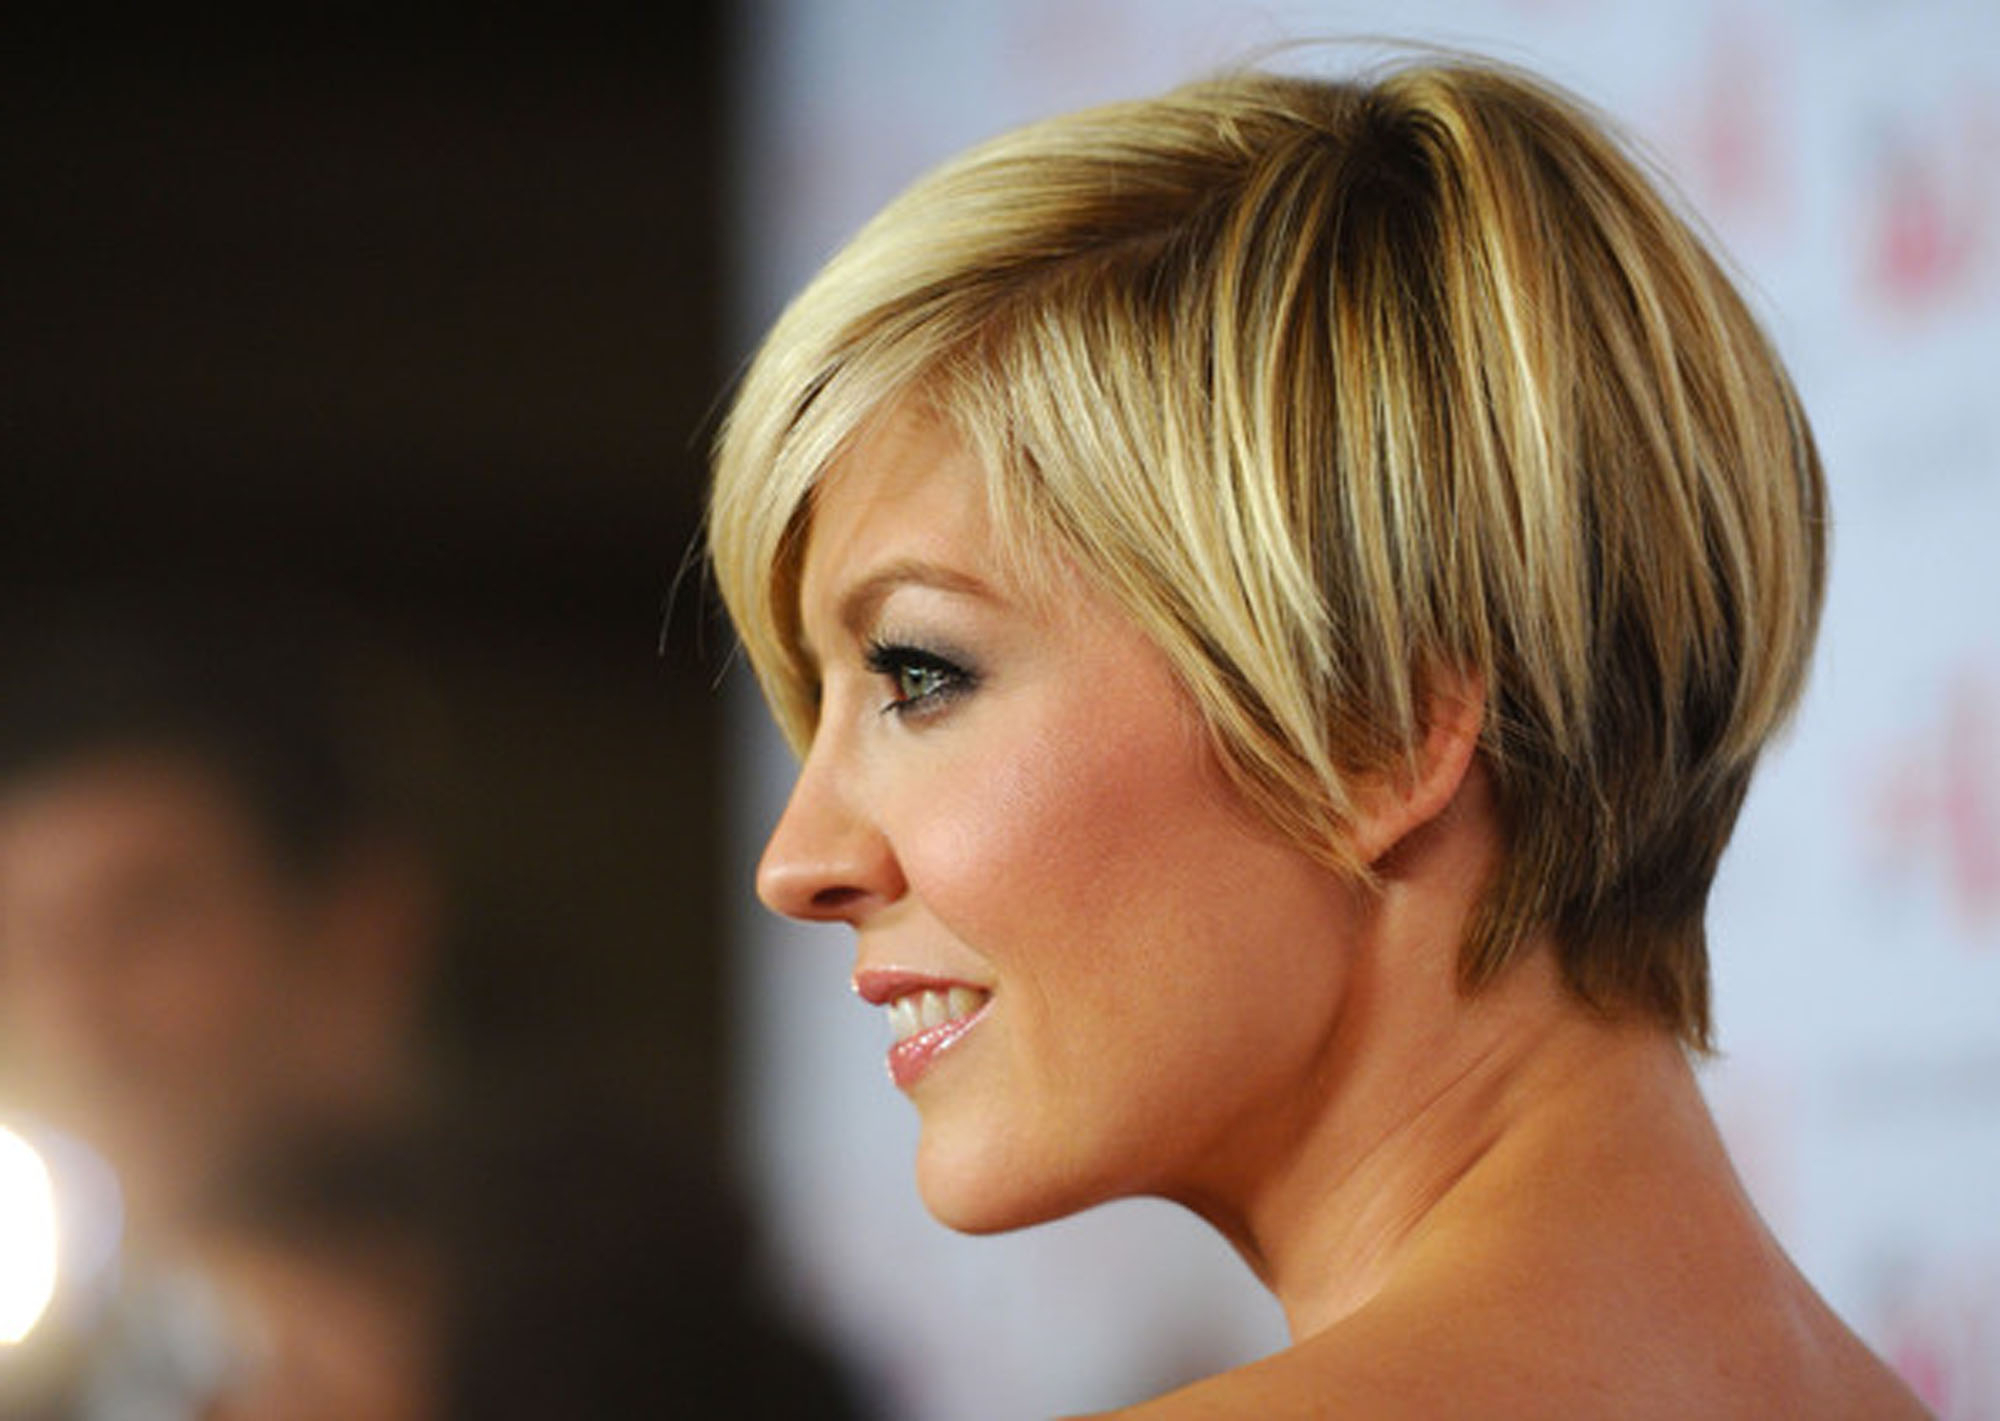 28 Best Hairstyles For Short Hair Inside Women Short To Medium Hairstyles (View 4 of 25)